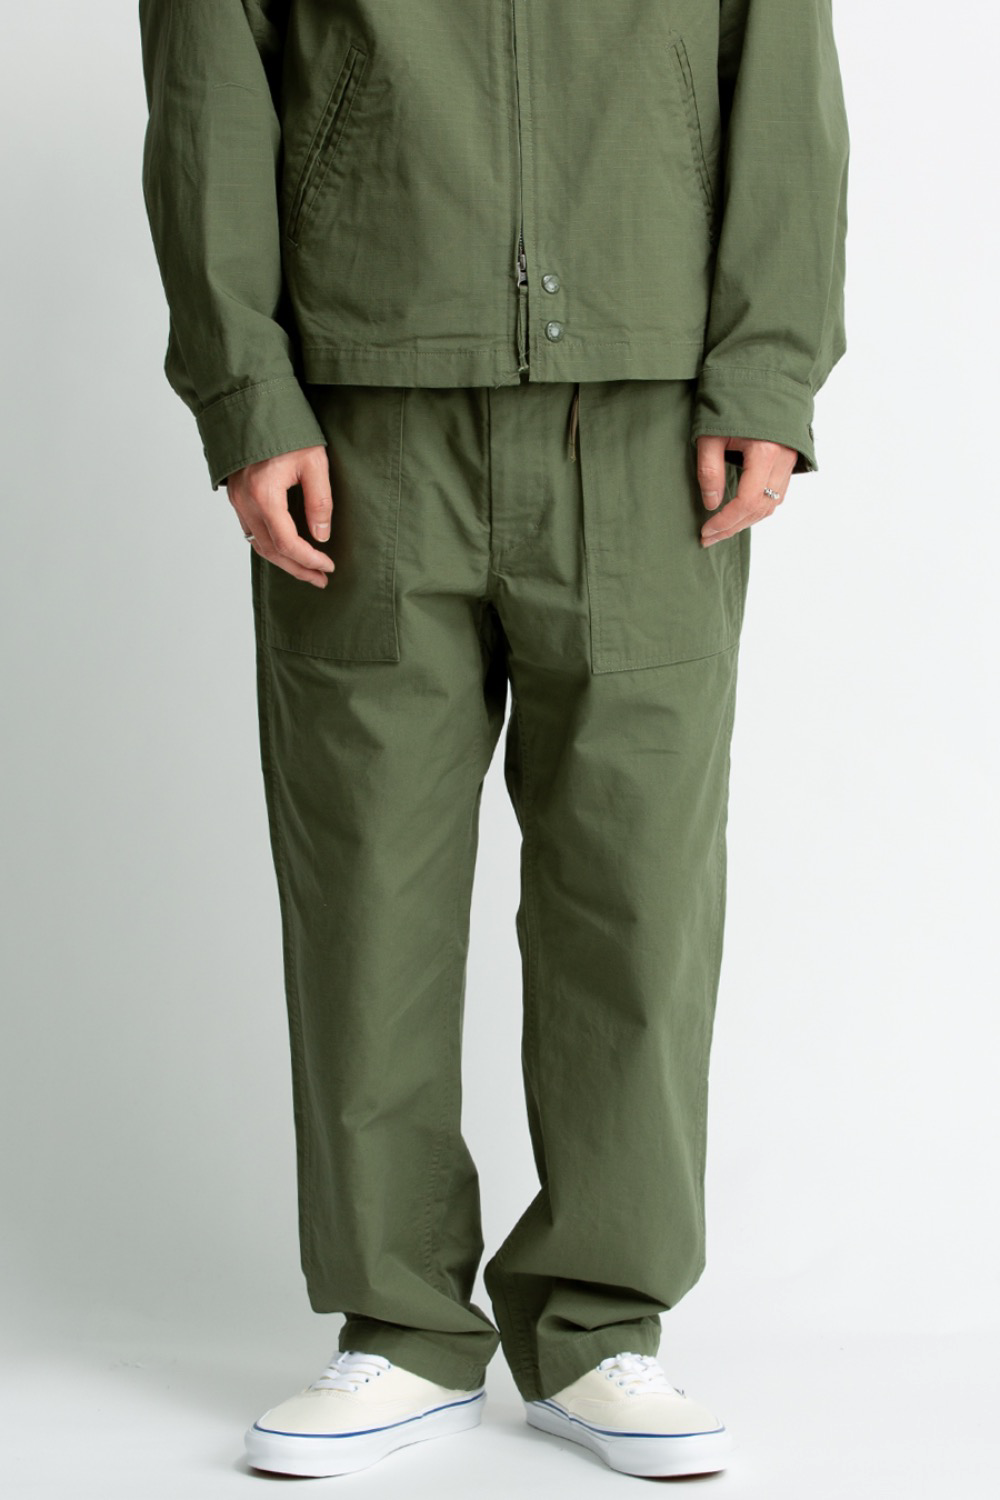 FATIGUE PANT OLIVE COTTON RIPSTOP